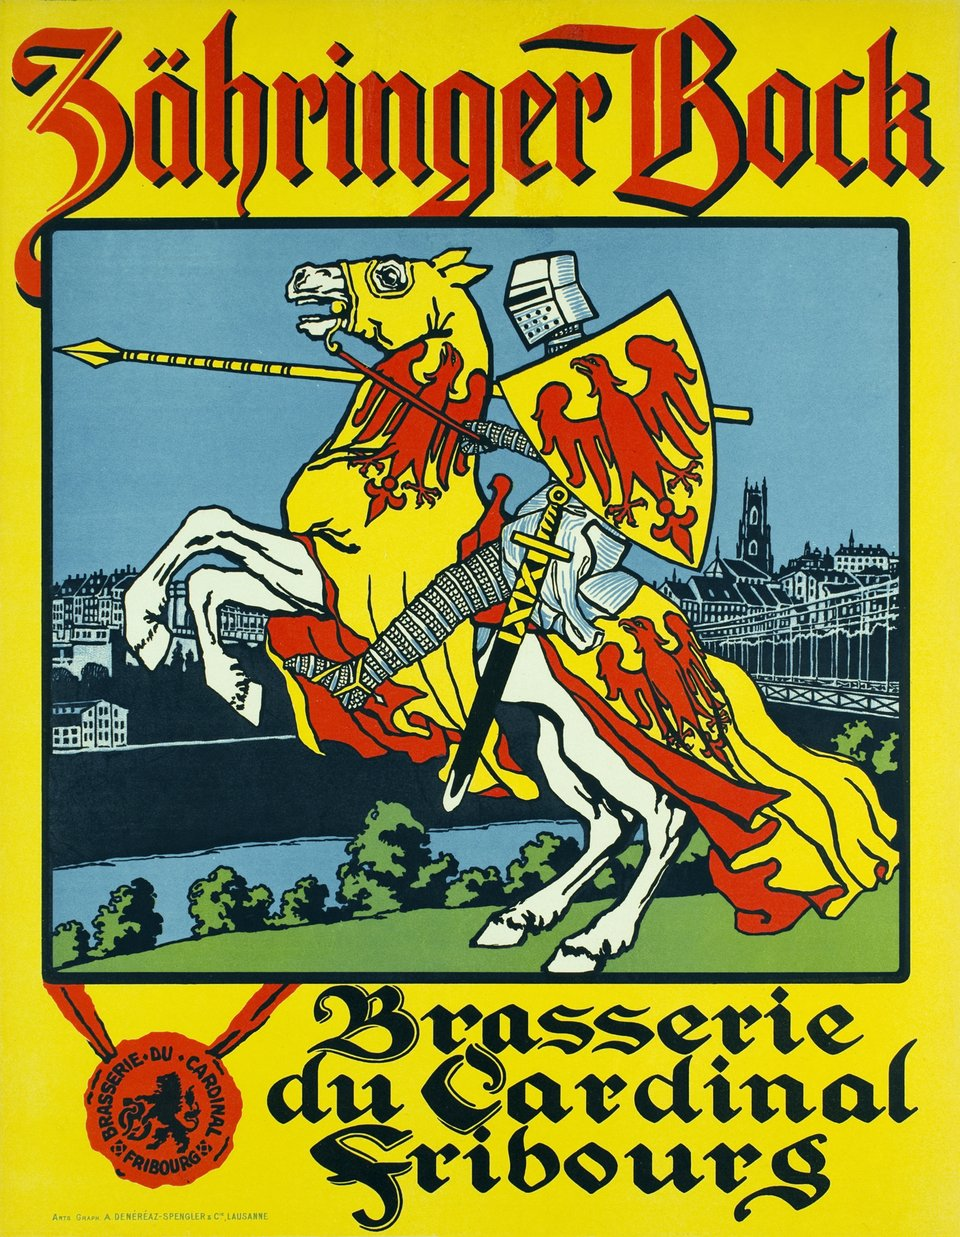 Zähringer Bock, Fribourg, Brasserie du Cardinal – Affiche ancienne –  ANONYME – 1910